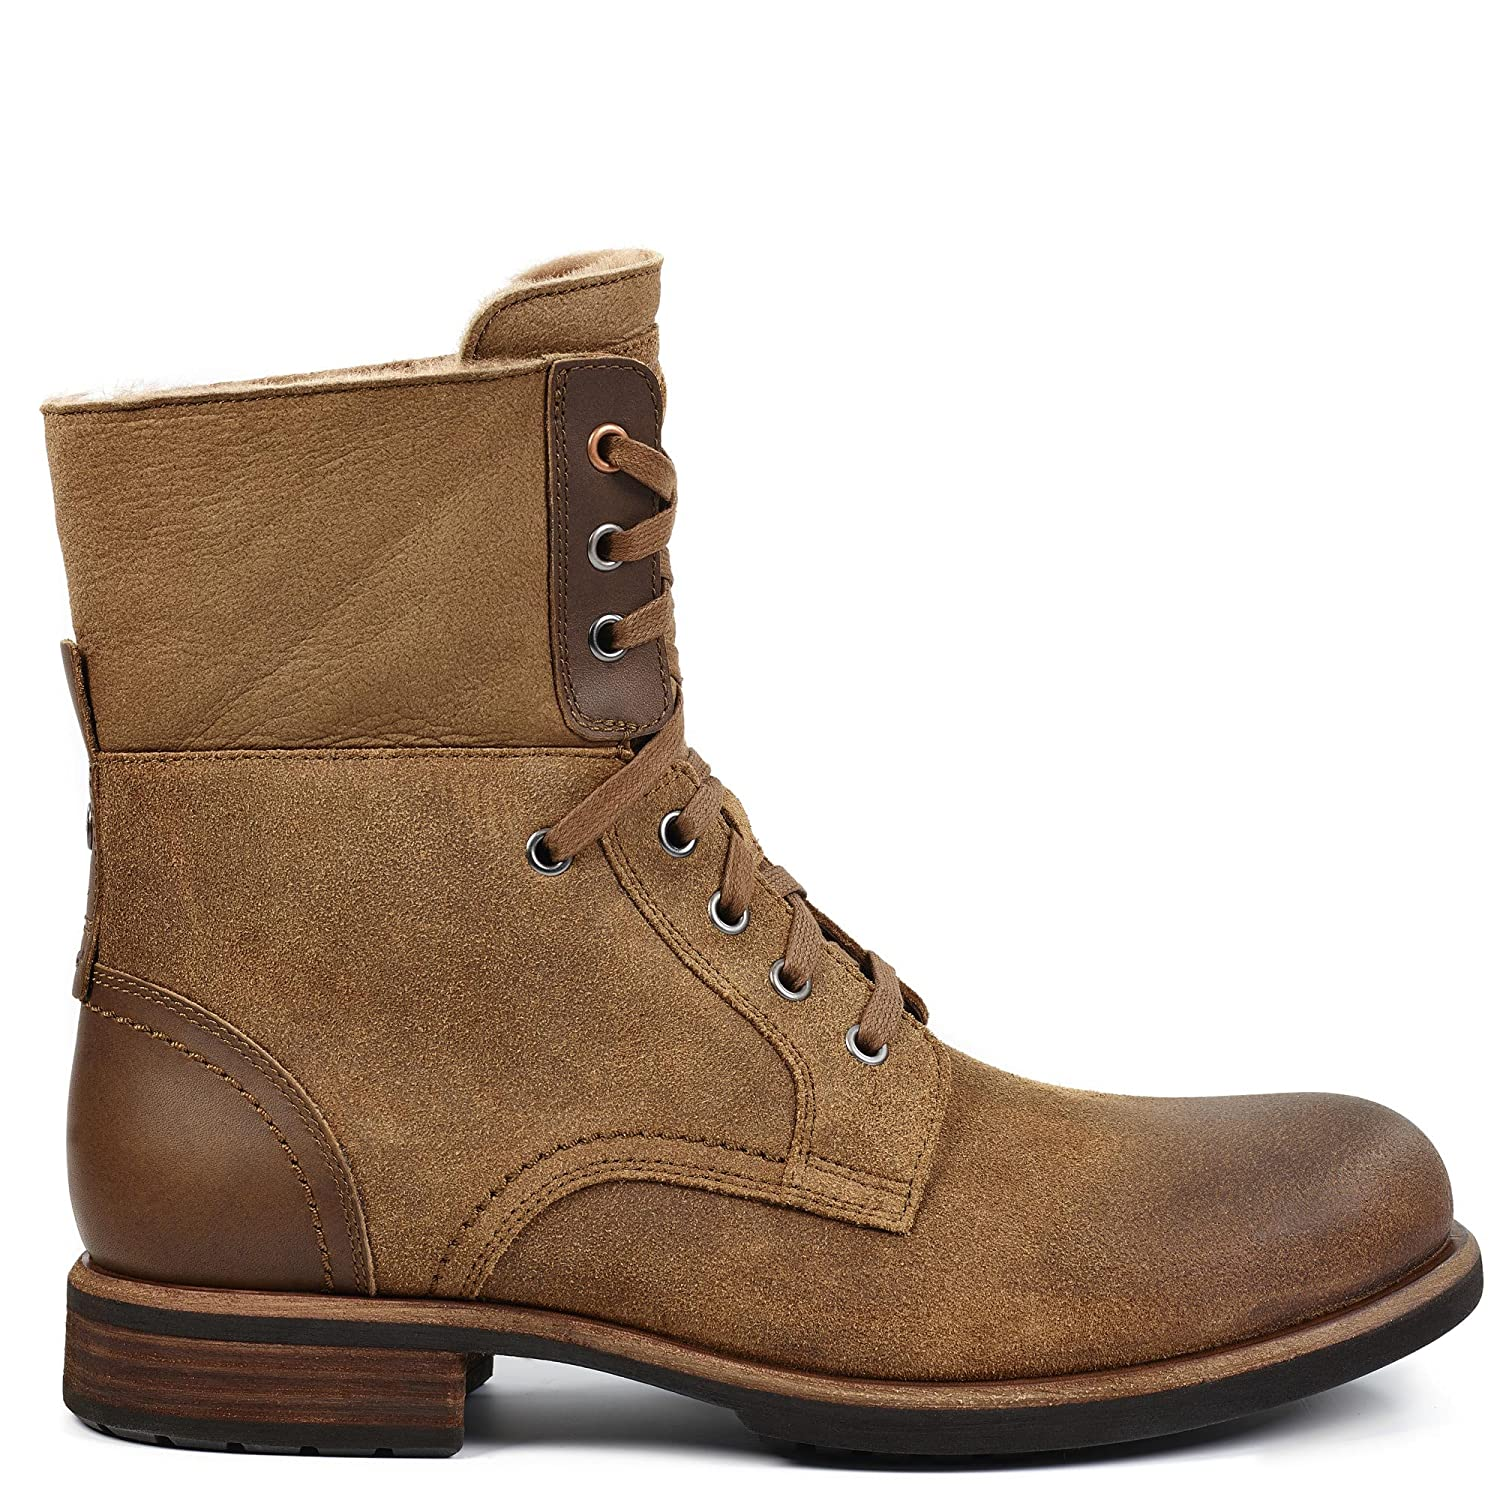 97abb9ba519 UGG Men's Boots Brown Brown (Chestnut) Brown Size: 5.5: Amazon.co.uk ...